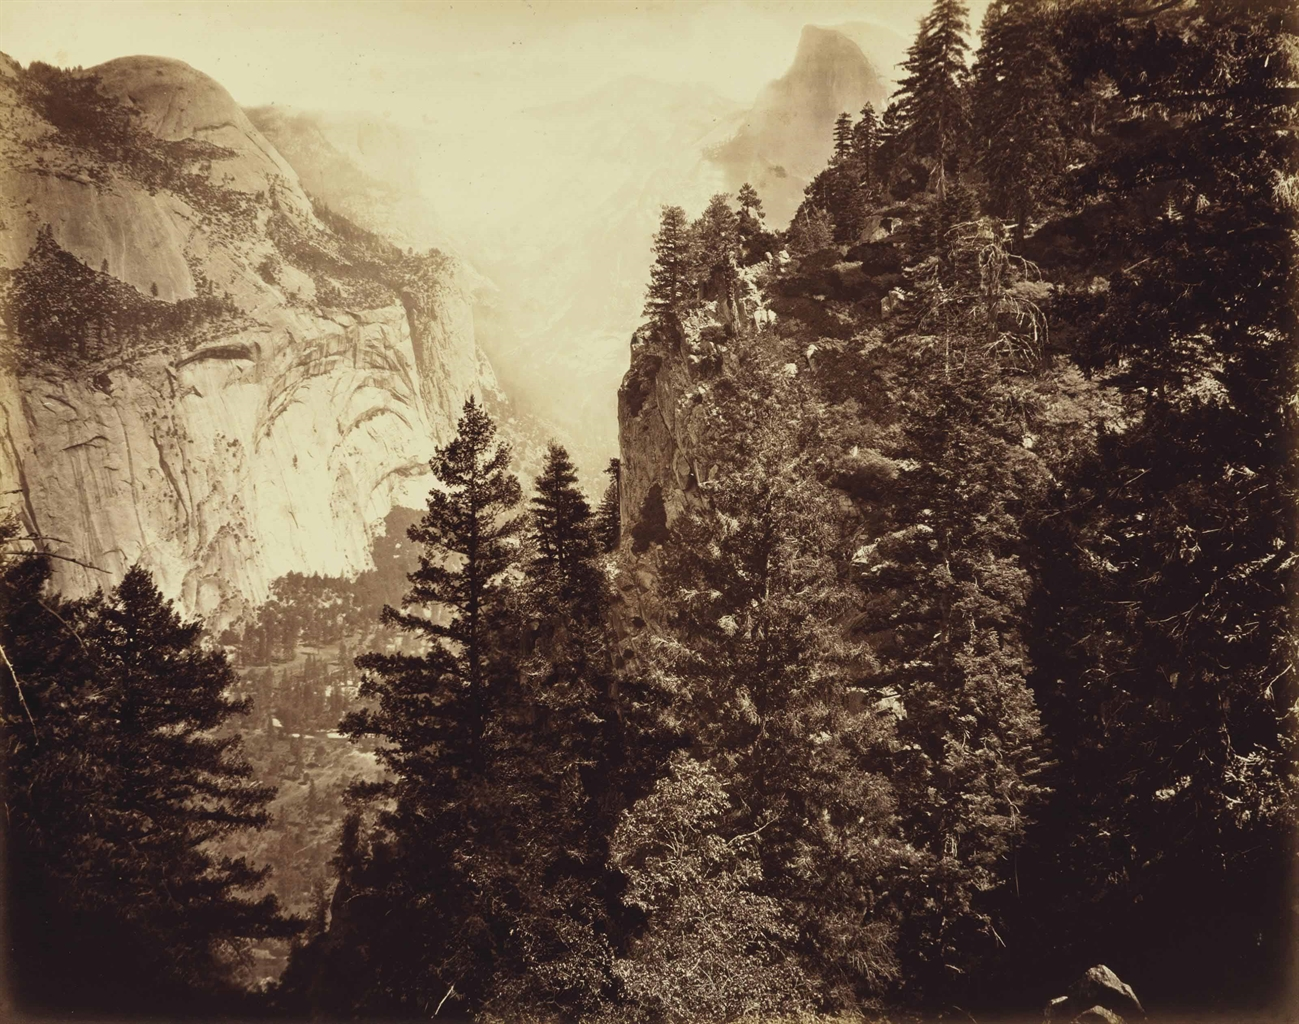 Eadweard Muybridge-Tenaya Canyon: Valley Of The Yosemite-1872